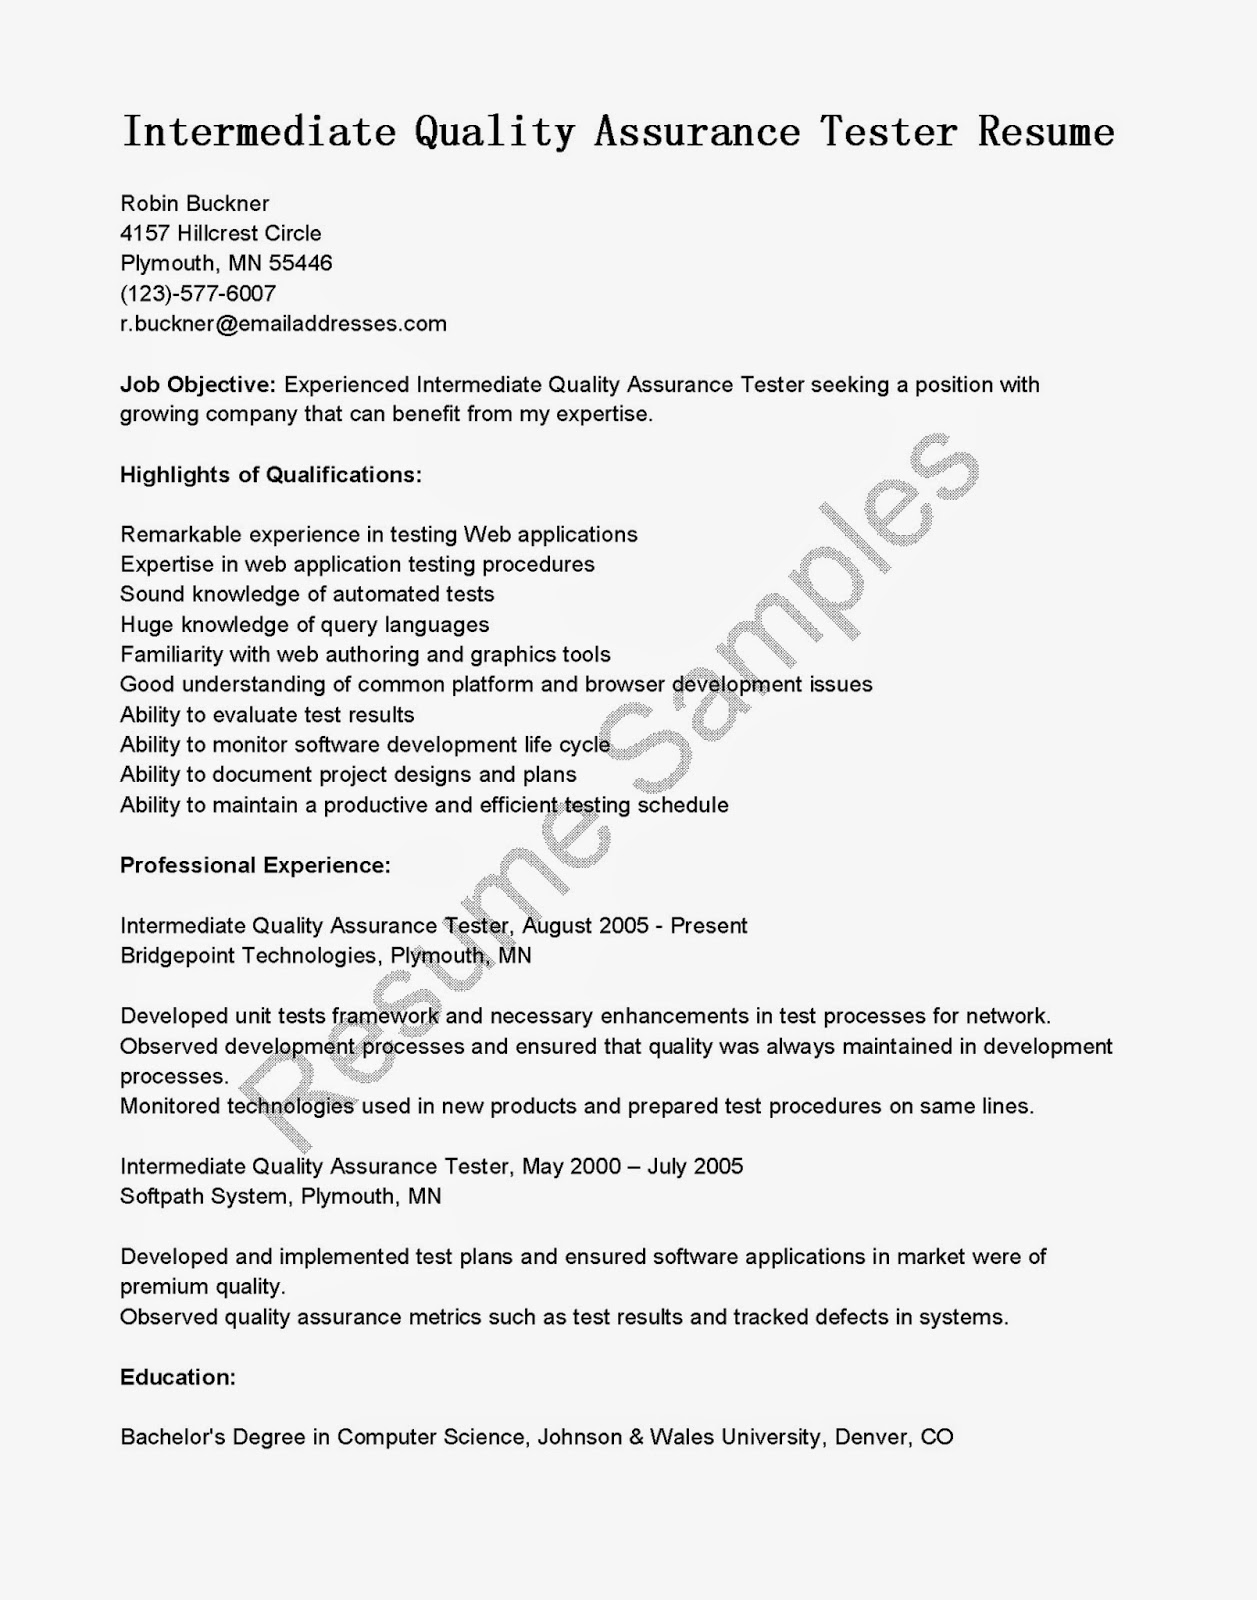 resume law school graduate docstoc comhow to graduate school law school resume format yale law school - Law School Resume